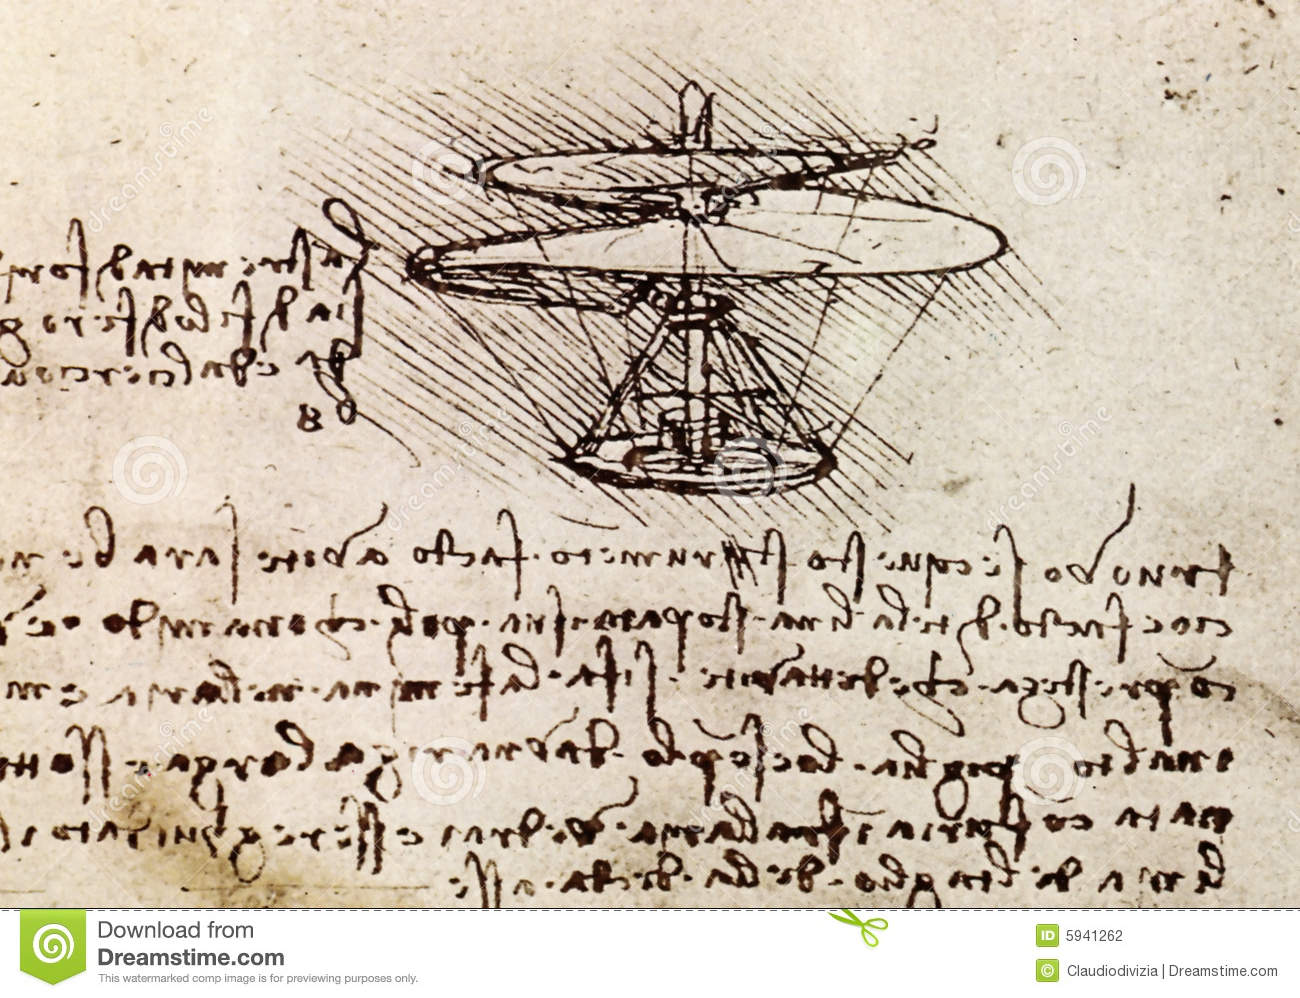 leonardo da vinci helicopter design with Stock Photography Da Vinci Drawing Image5941262 on Flying Machine besides 8 Inventive Designs Of Leonardo Da Vinci That Have Modern Day Counterparts together with Stock Photography Da Vinci Drawing Image5941262 further 11 Leonardo Da Vinci Inventions in addition Behold The First Electric Guitar The 1931 Frying Pan.